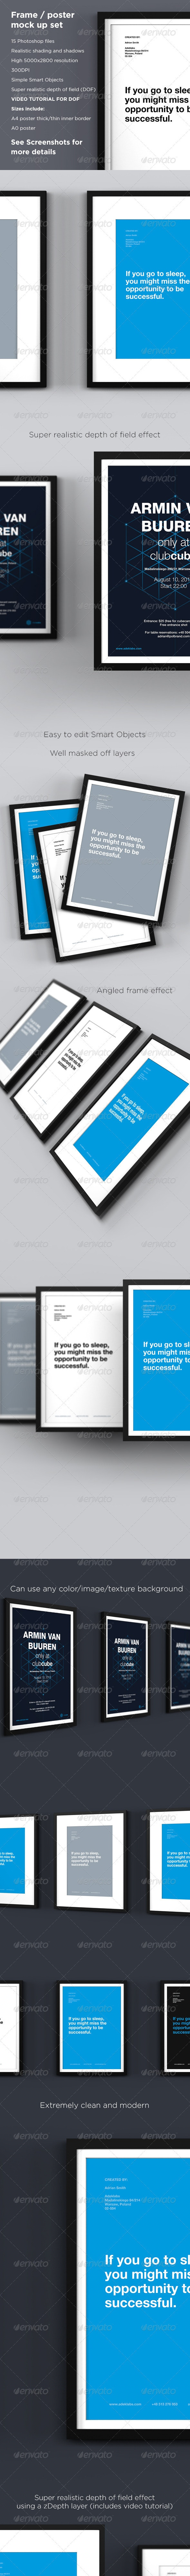 Frame / Poster Mock-up Pack - Posters Print